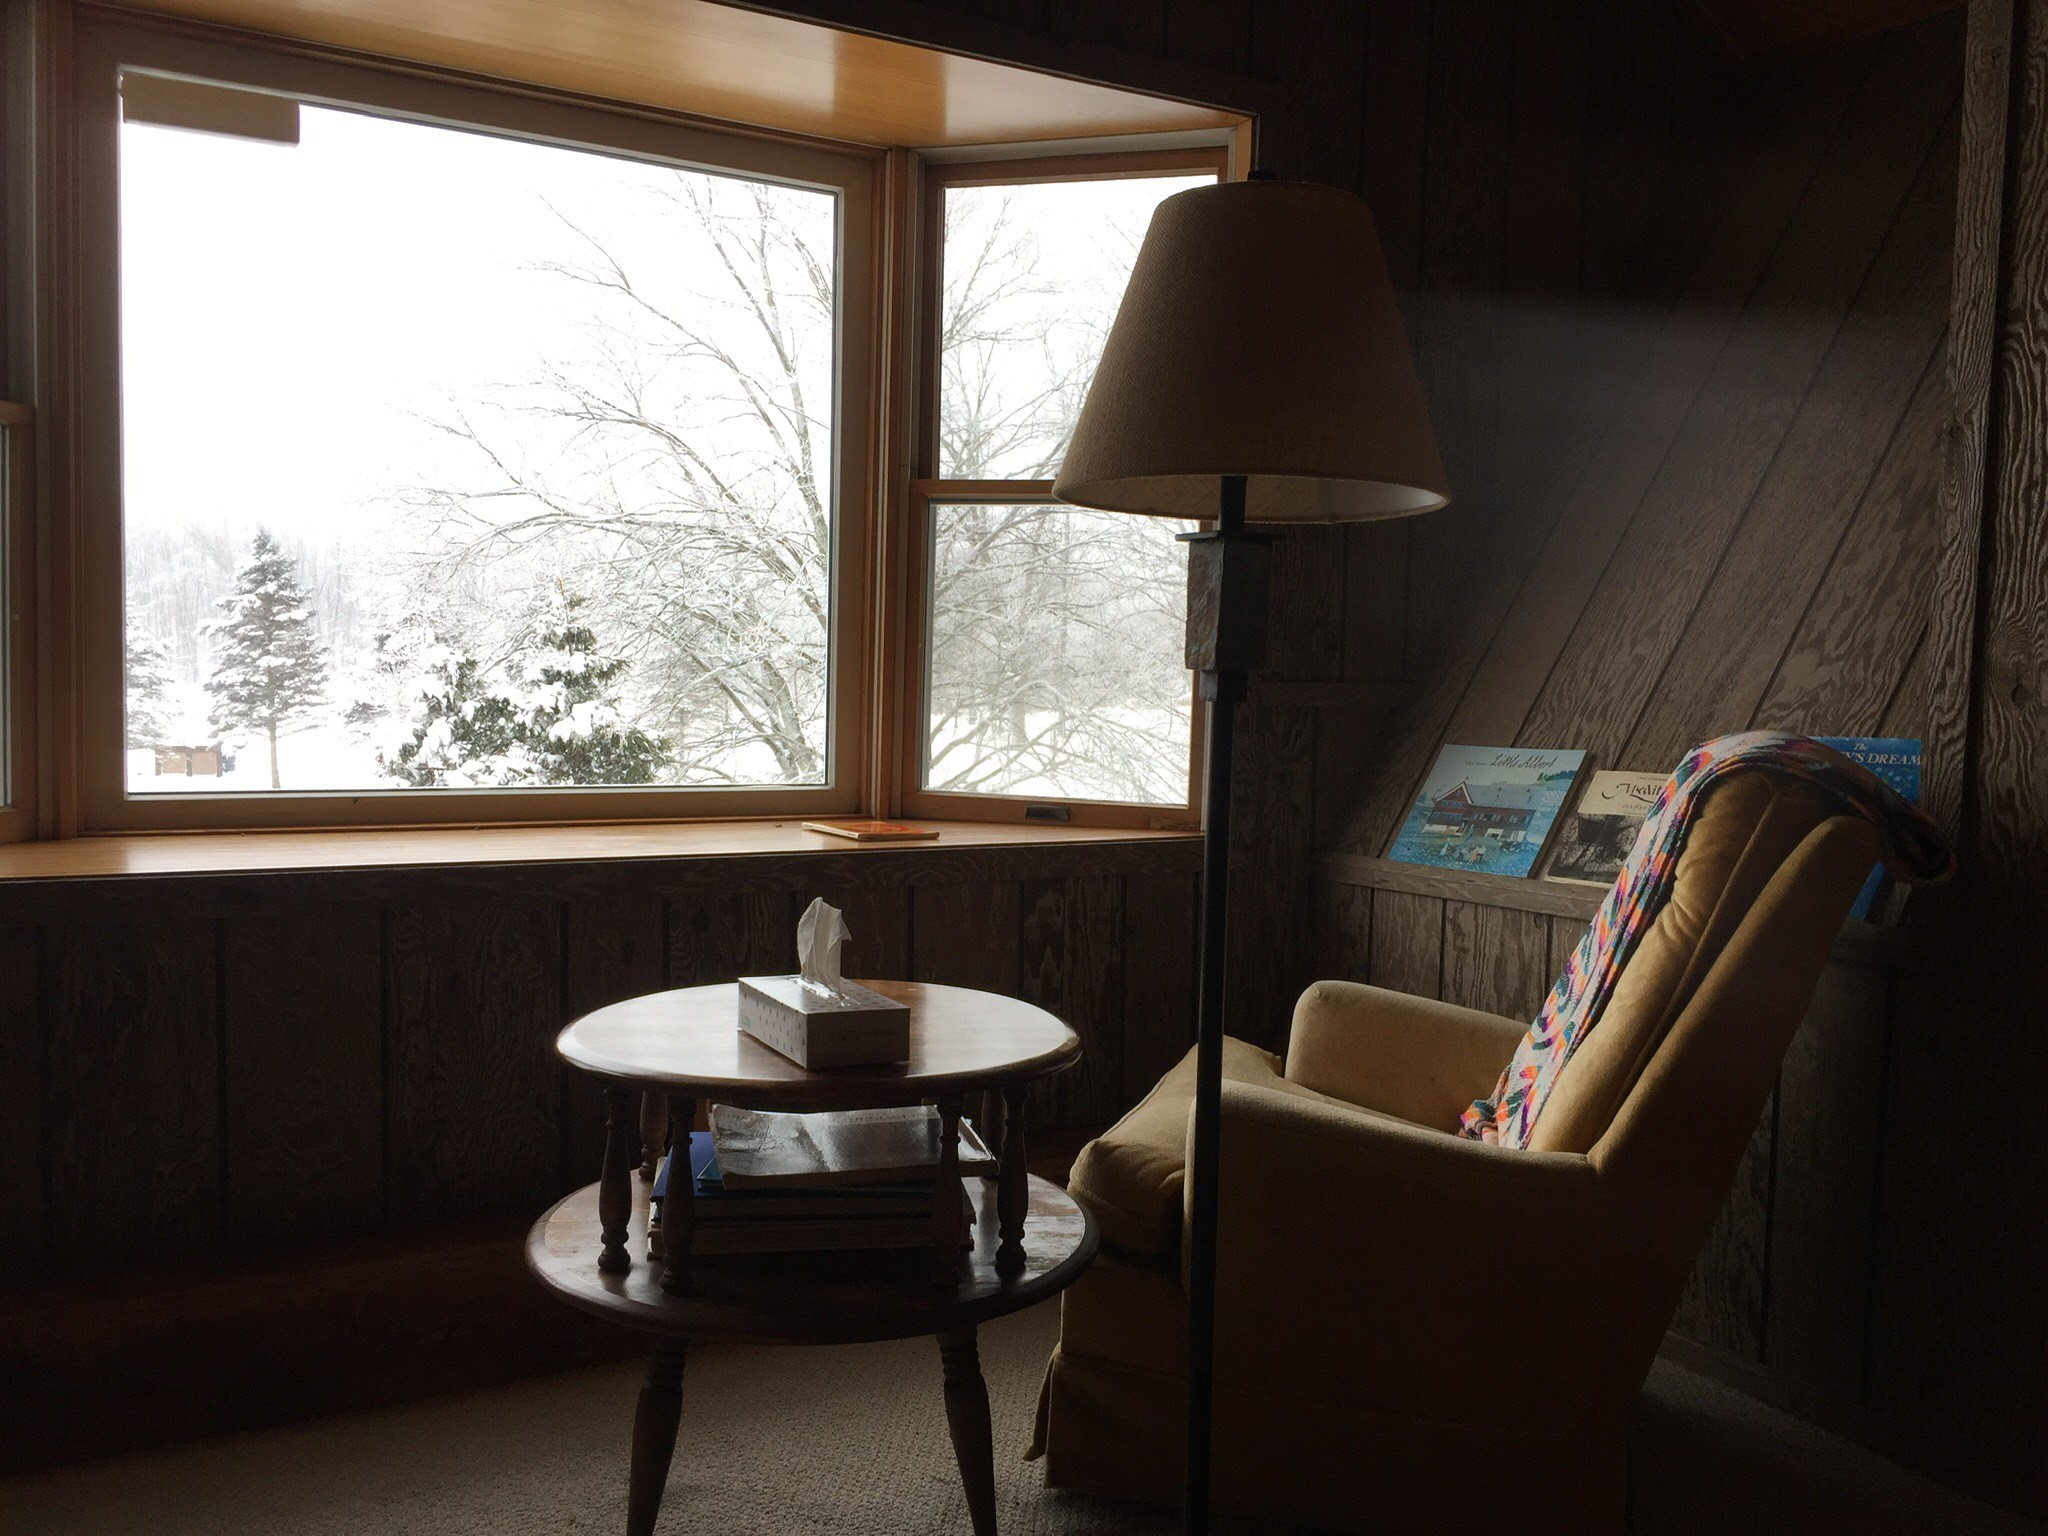 Comfortable chair at window with winter scene